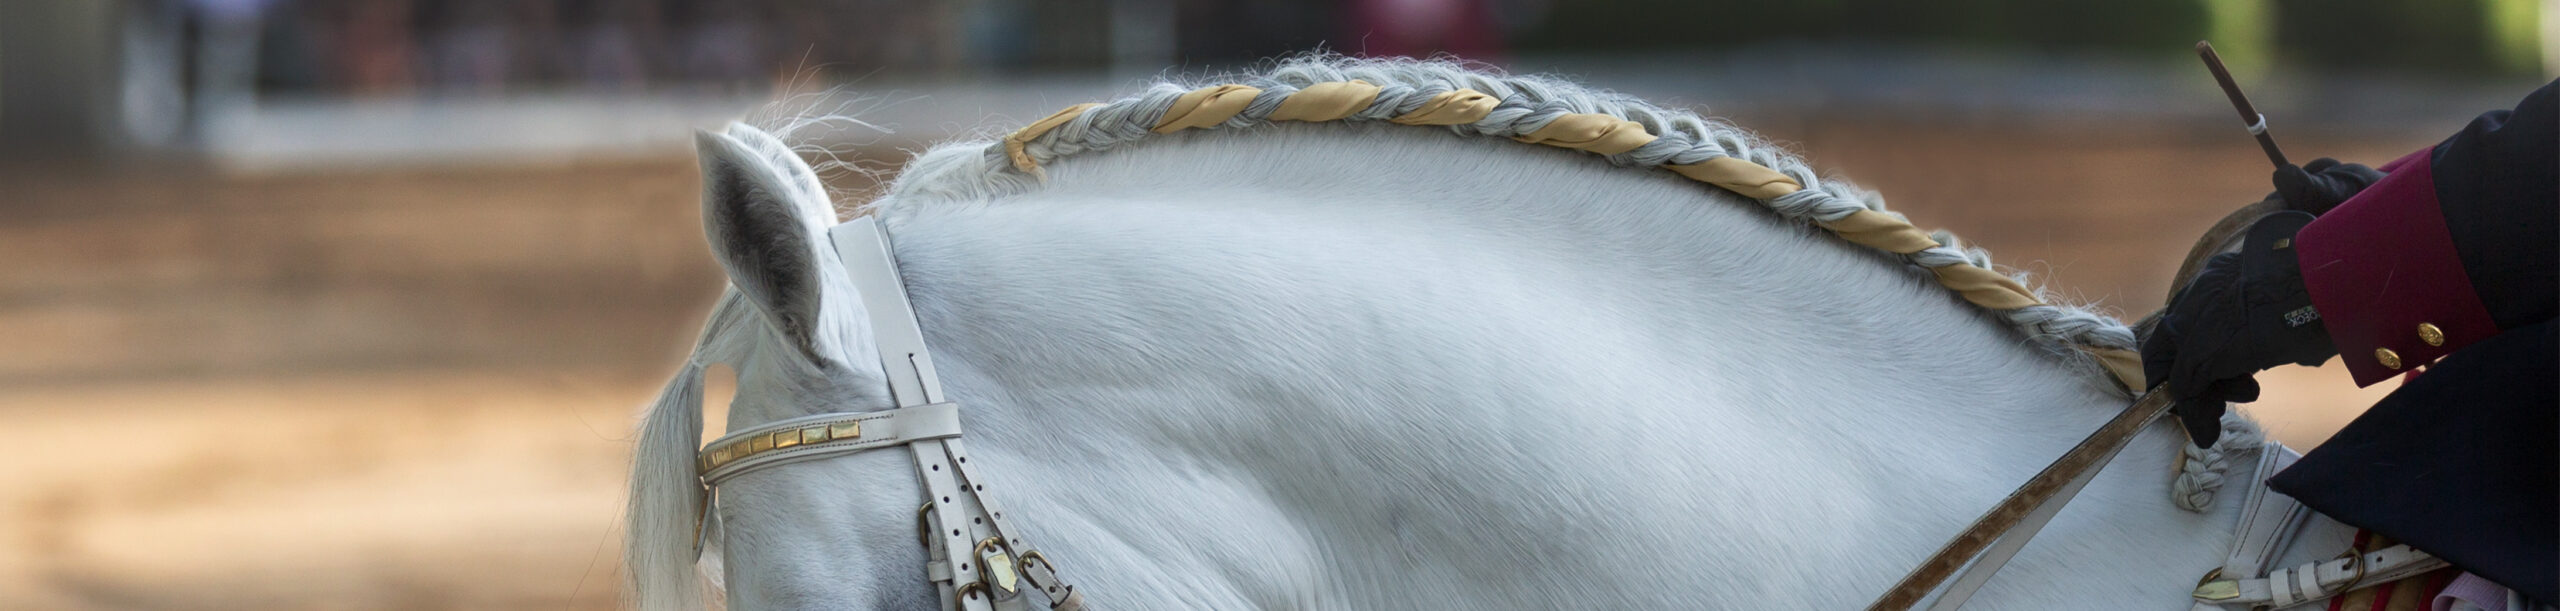 Commercial Equine Image example for a horse braider